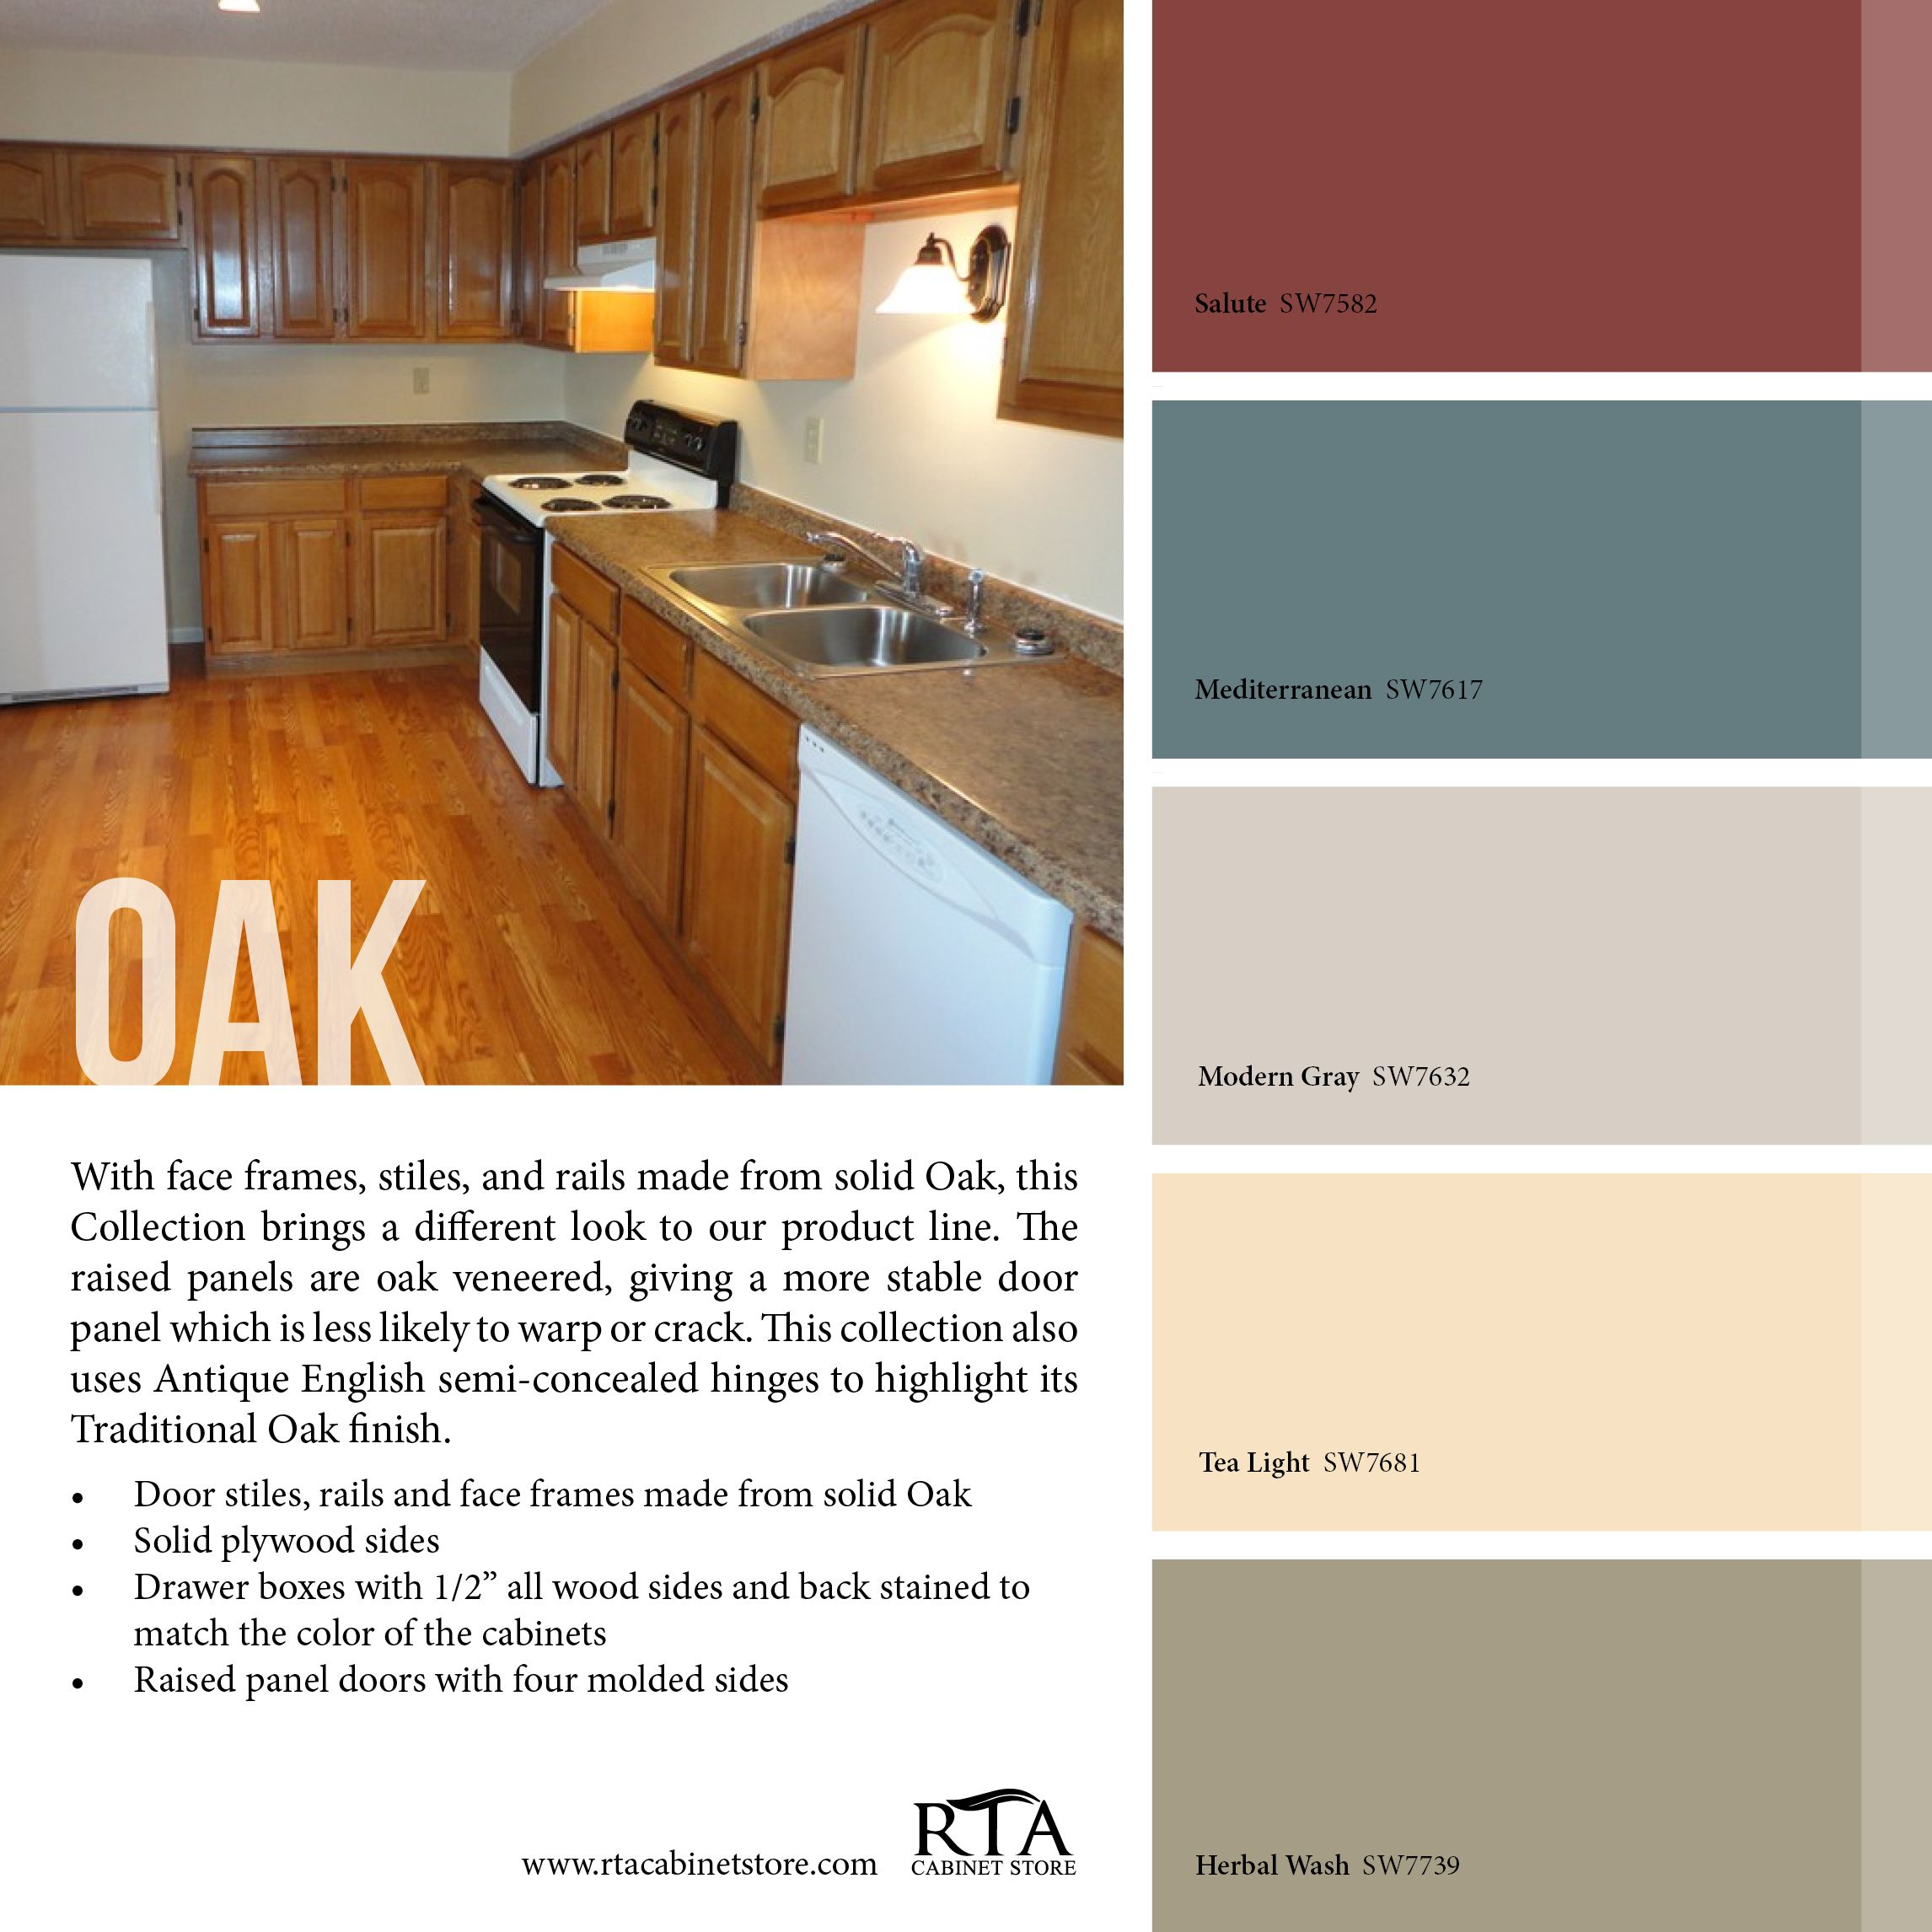 Color Palette To Go With Oak Kitchen Cabinet Line For Those